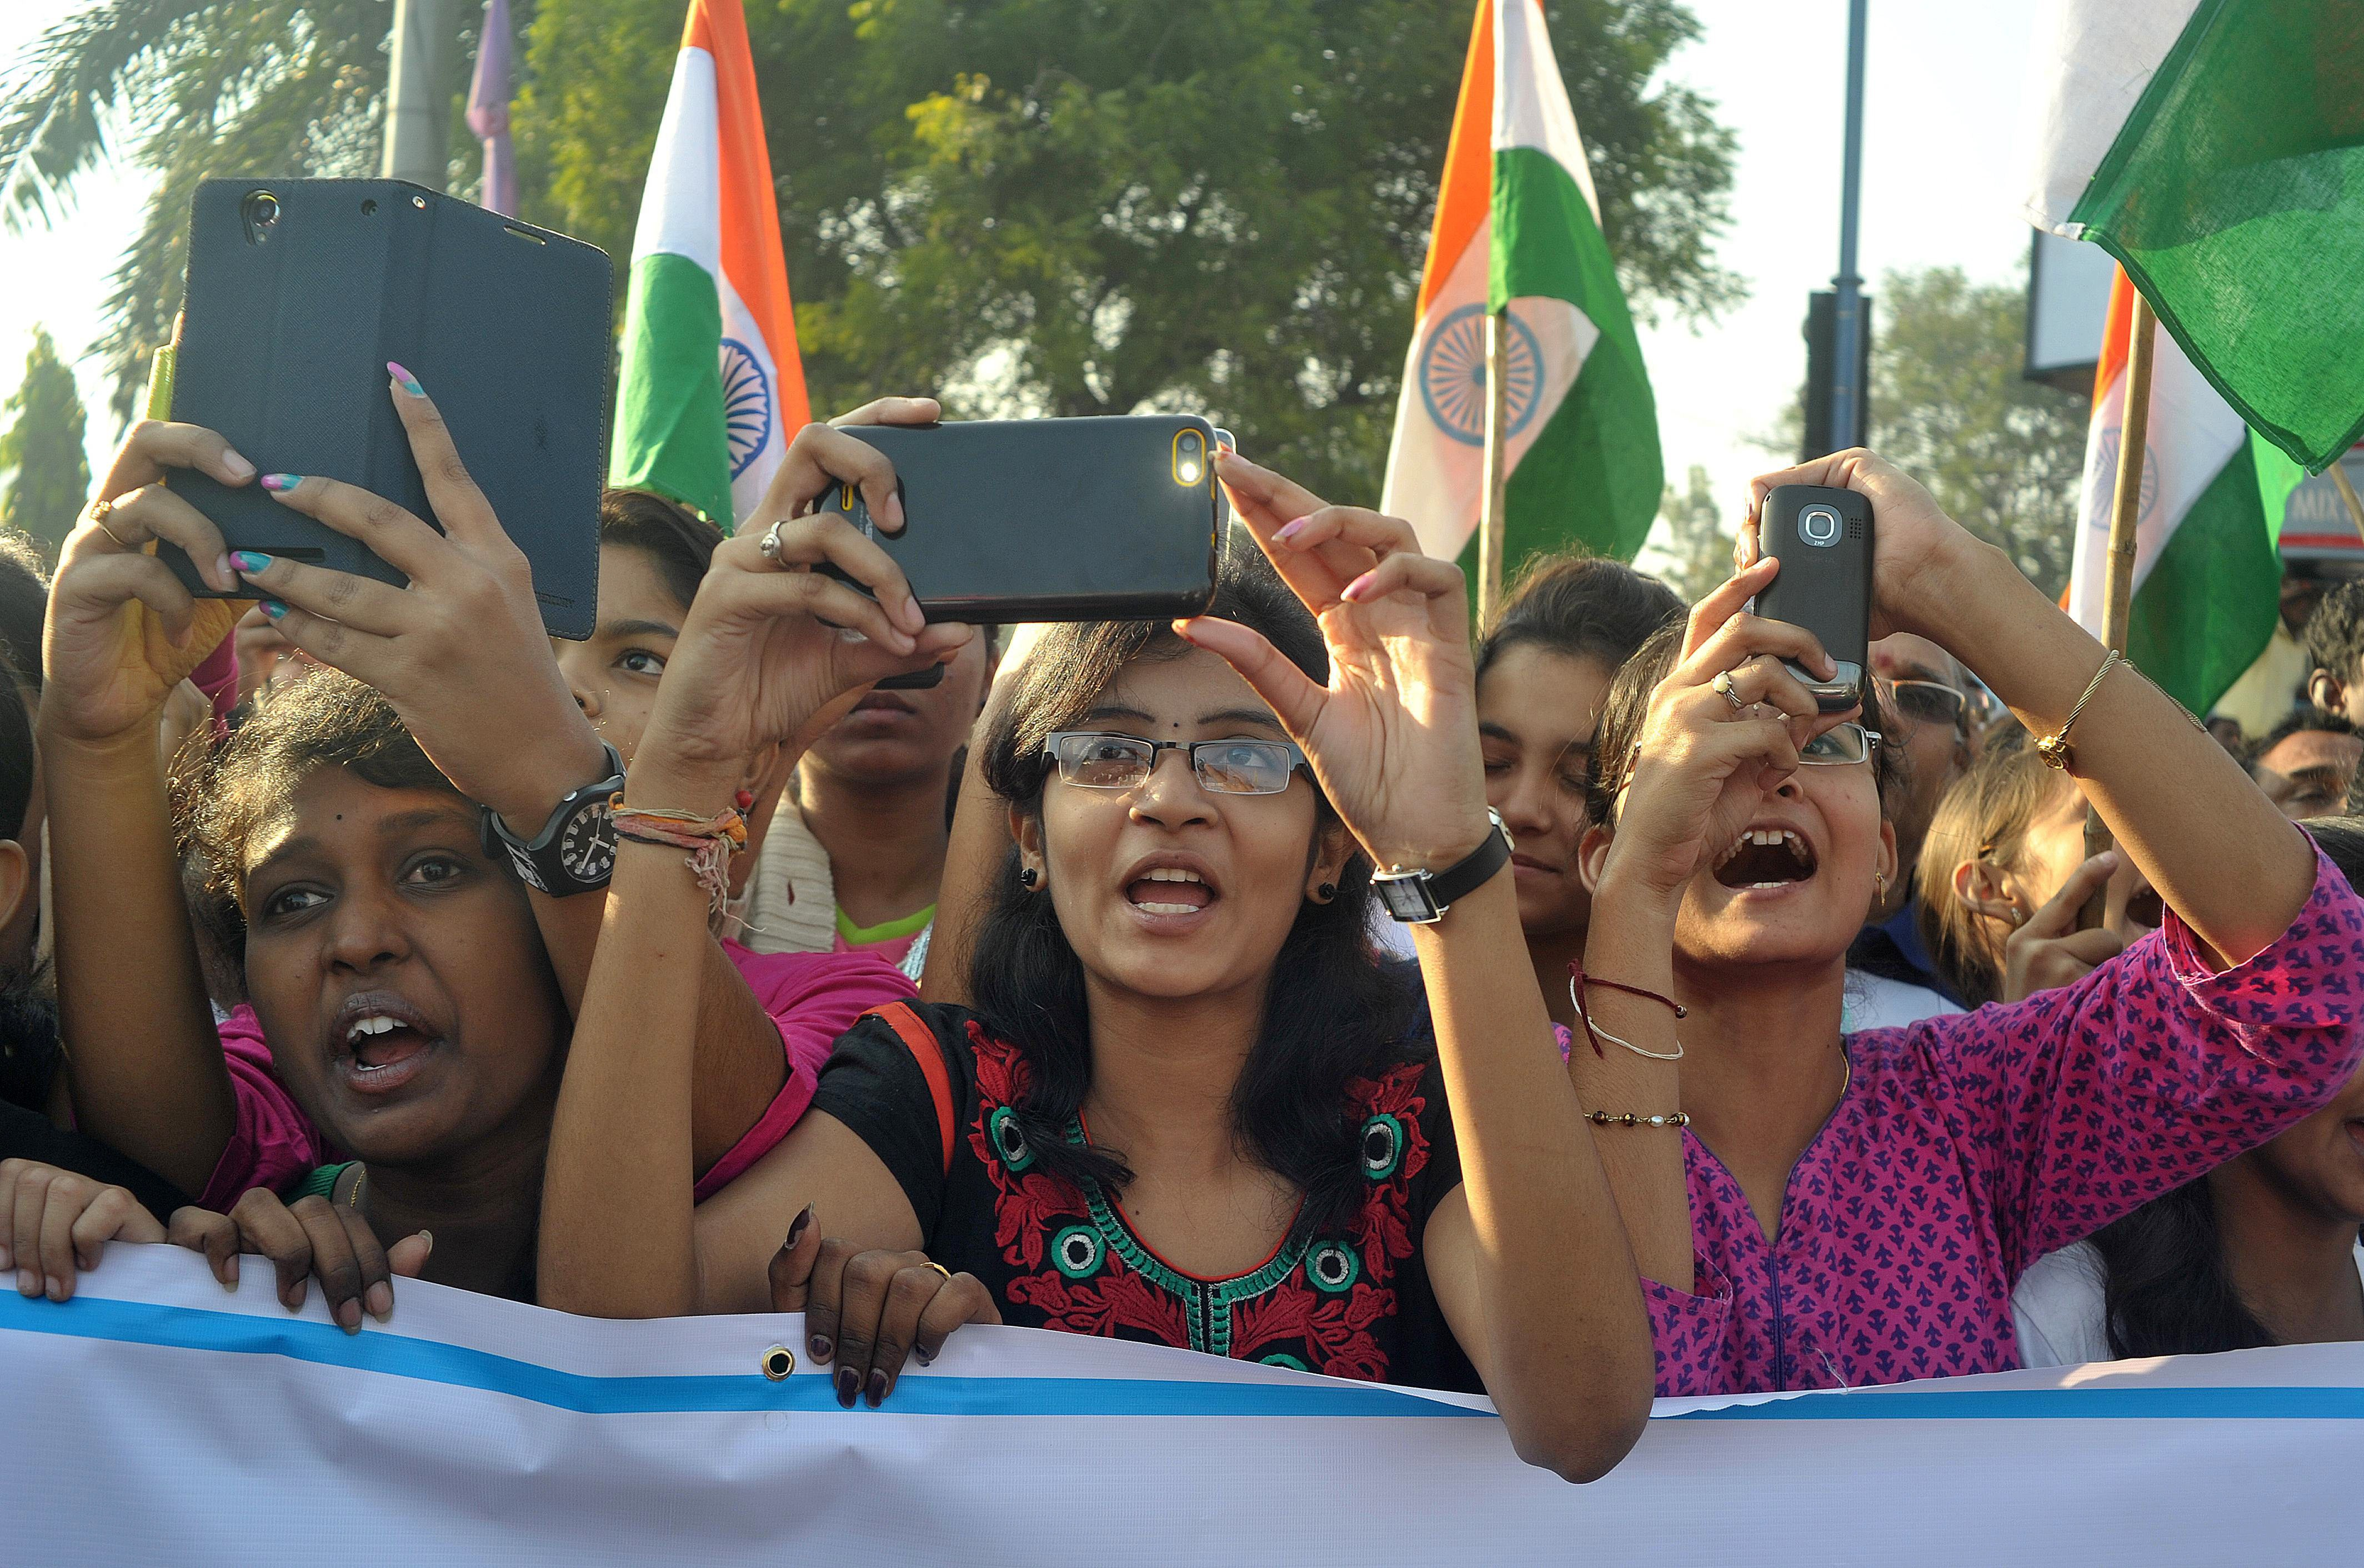 Indian students use cellphones to photograph unseen Central Home Minister of India Rajnath Singh during a Run for Unity event to mark the anniversary of the birth of Sardar Vallabhbhai Patel in Hyderabad on October 31, 2014.